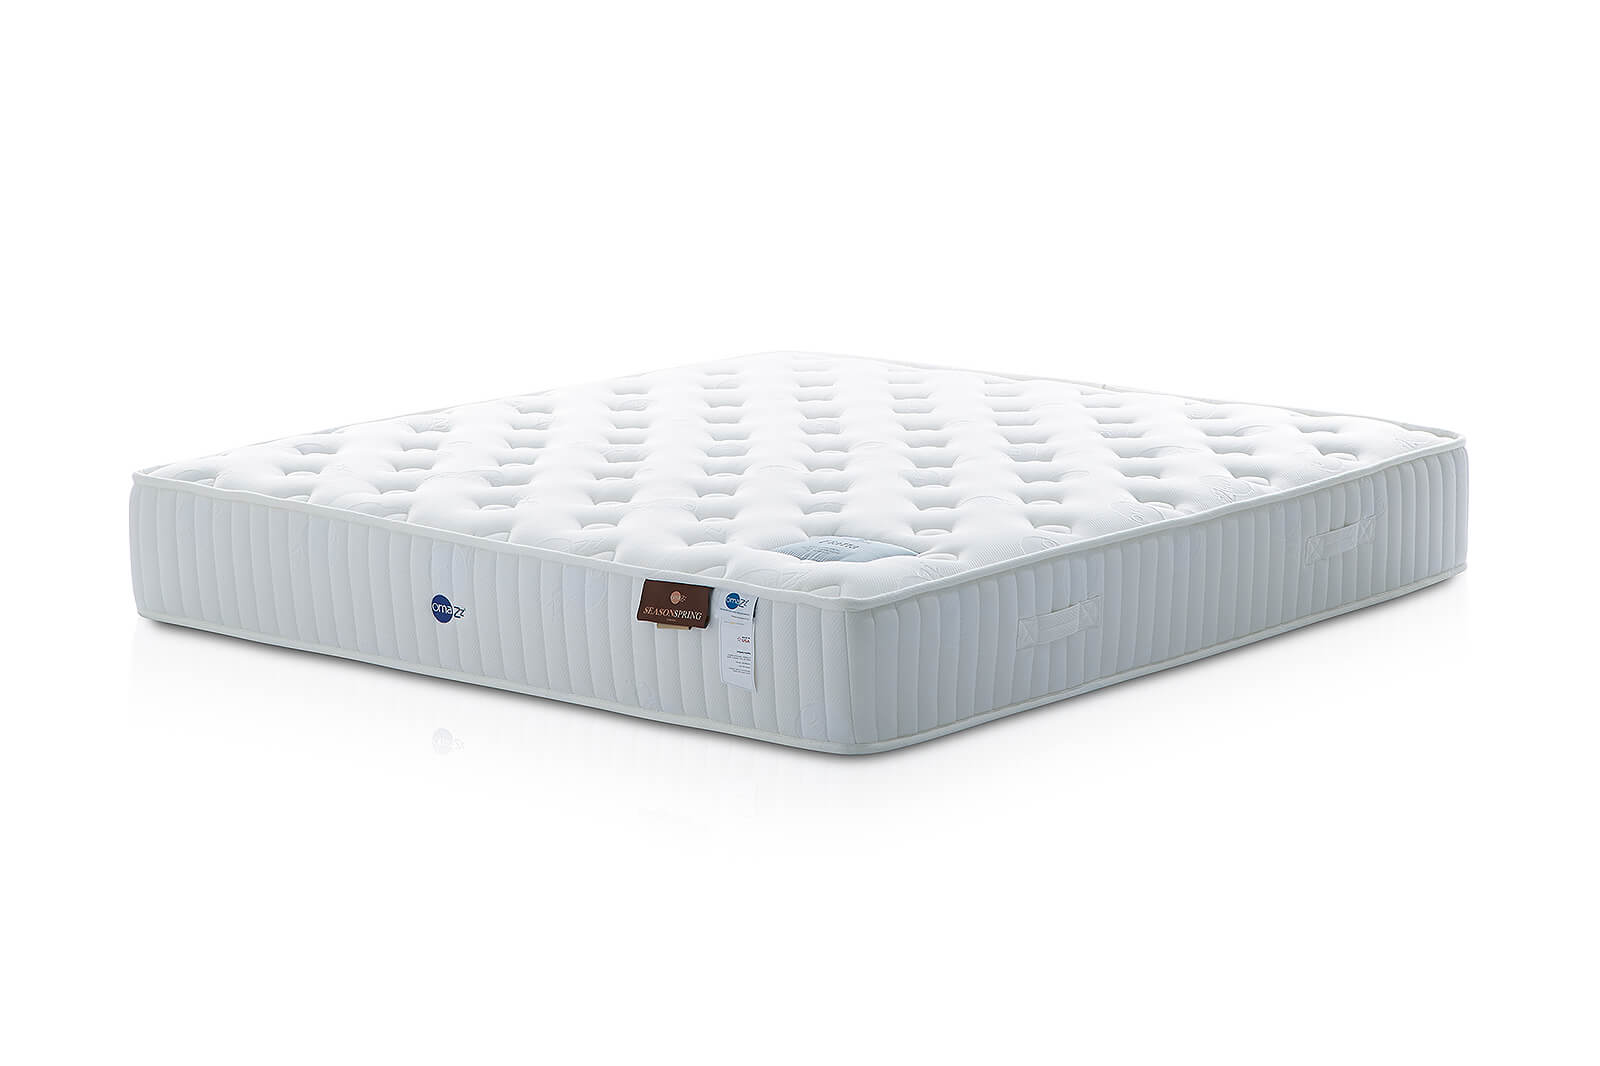 Omazz Mattress Fiatta